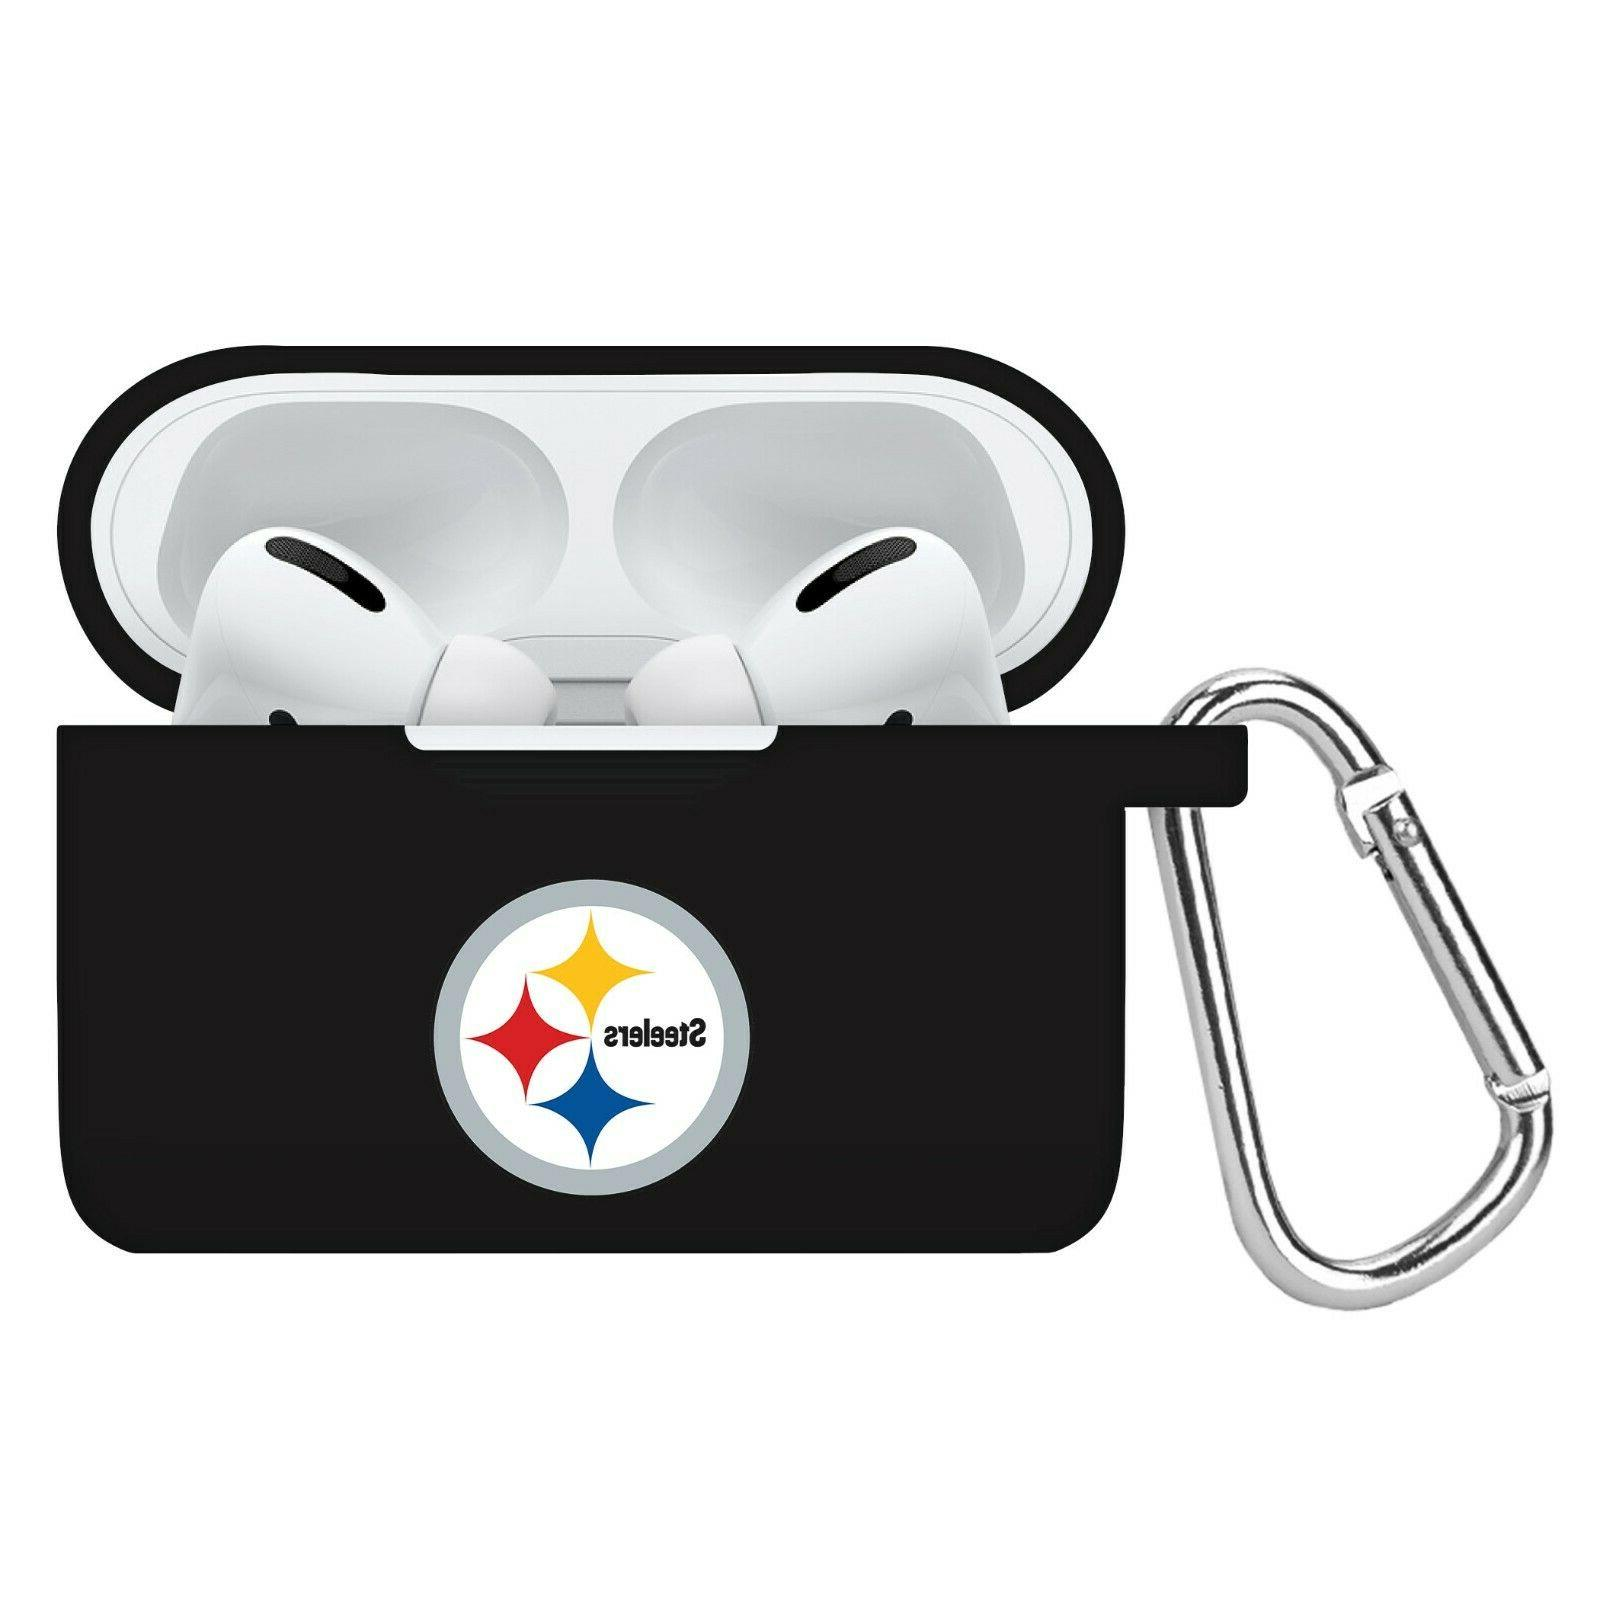 pittsburgh steelers airpods pro case cover